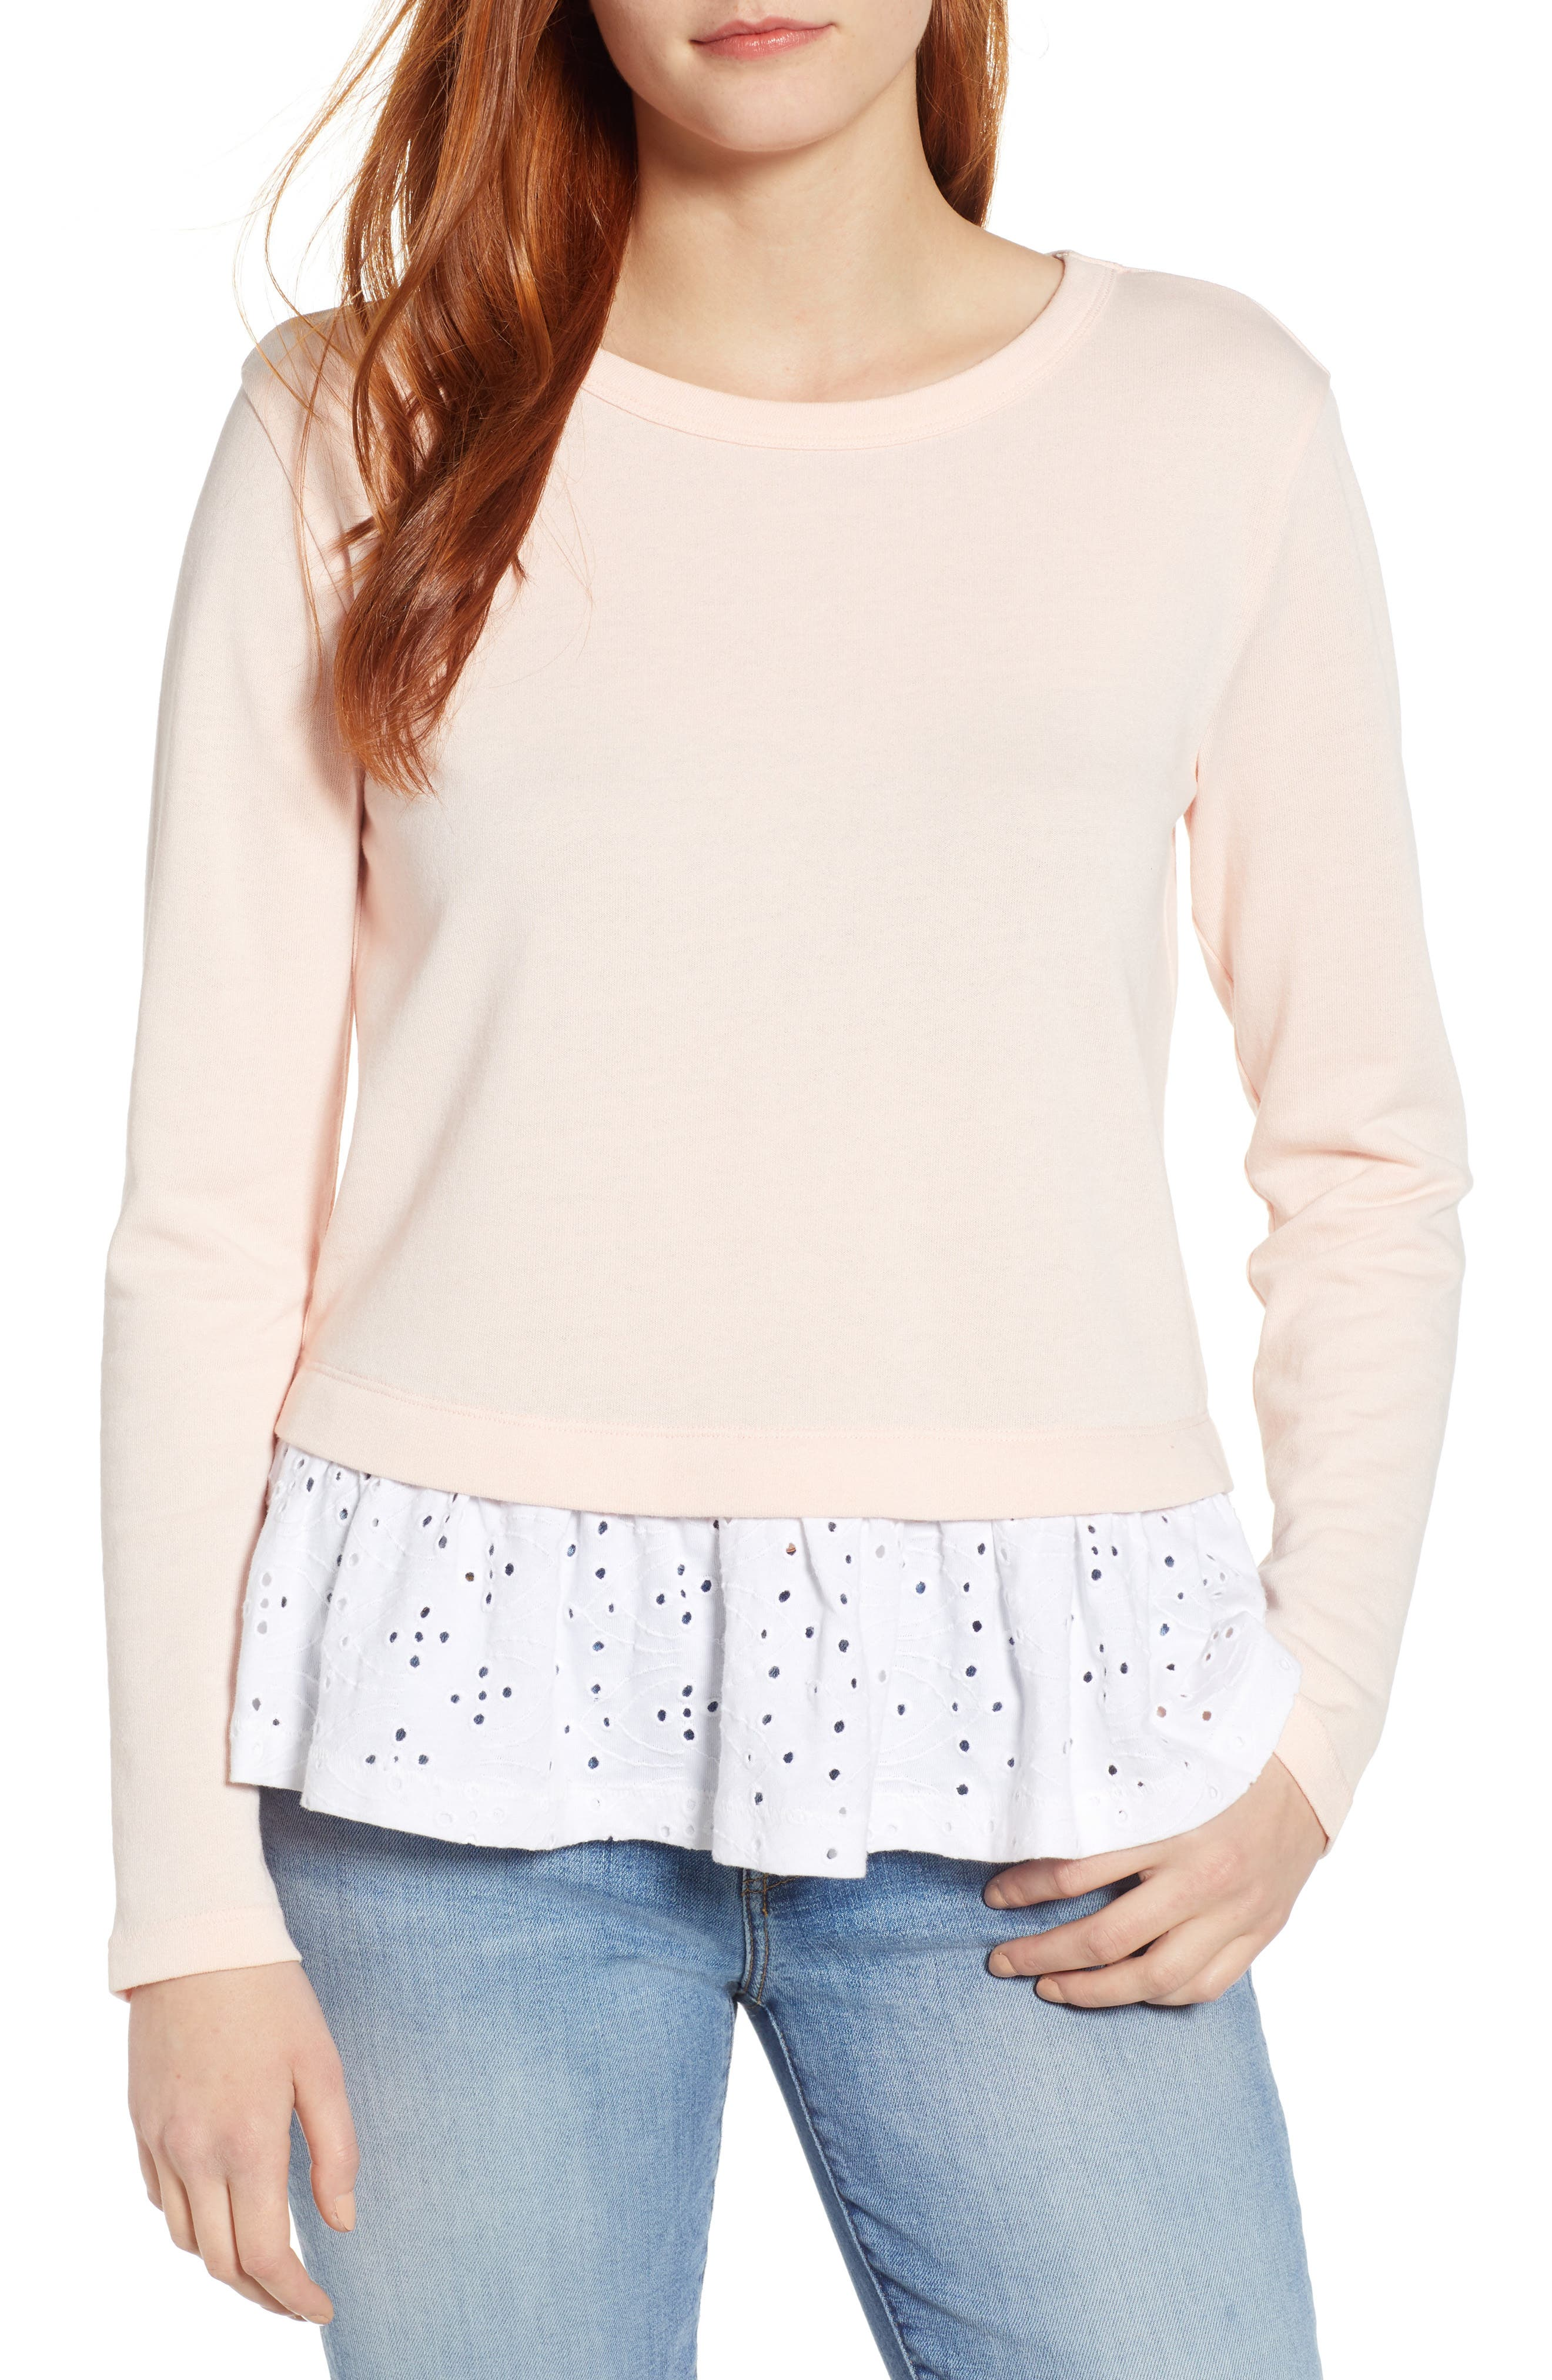 CASLON<SUP>®</SUP>, Eyelet Peplum Sweatshirt, Main thumbnail 1, color, PINK- WHITE